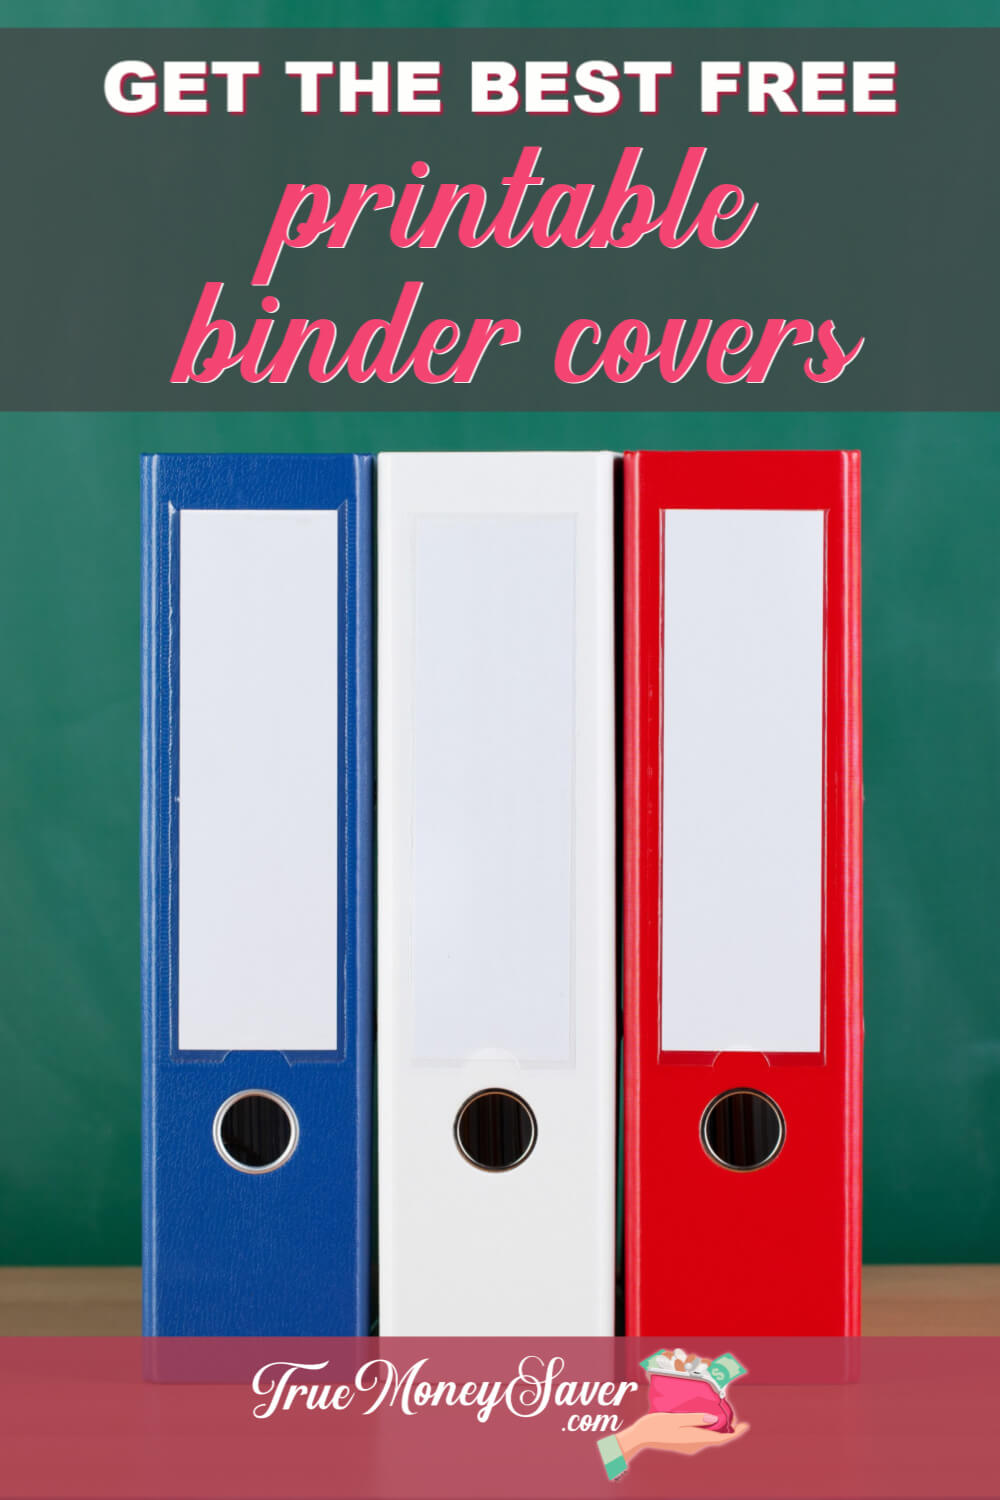 If you need a binder, you need a great looking binder cover! Check out these Free Printable Binder Covers to Color! Plus there are some school printable binder covers, kids printable binder covers and even some cute printable binder covers! Print your FREEbie today!